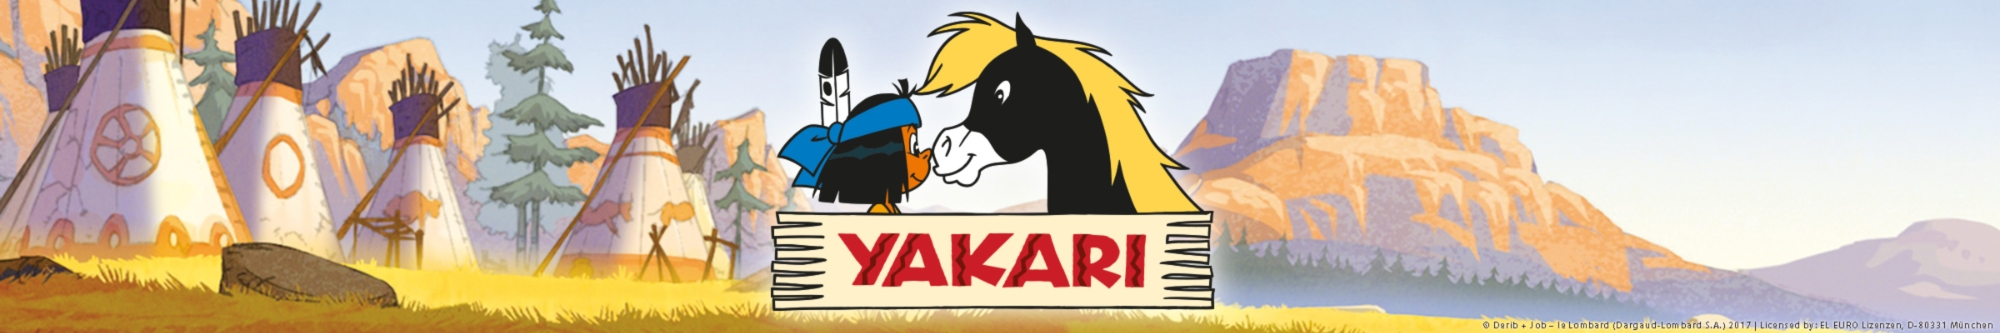 Showroom - Yakari